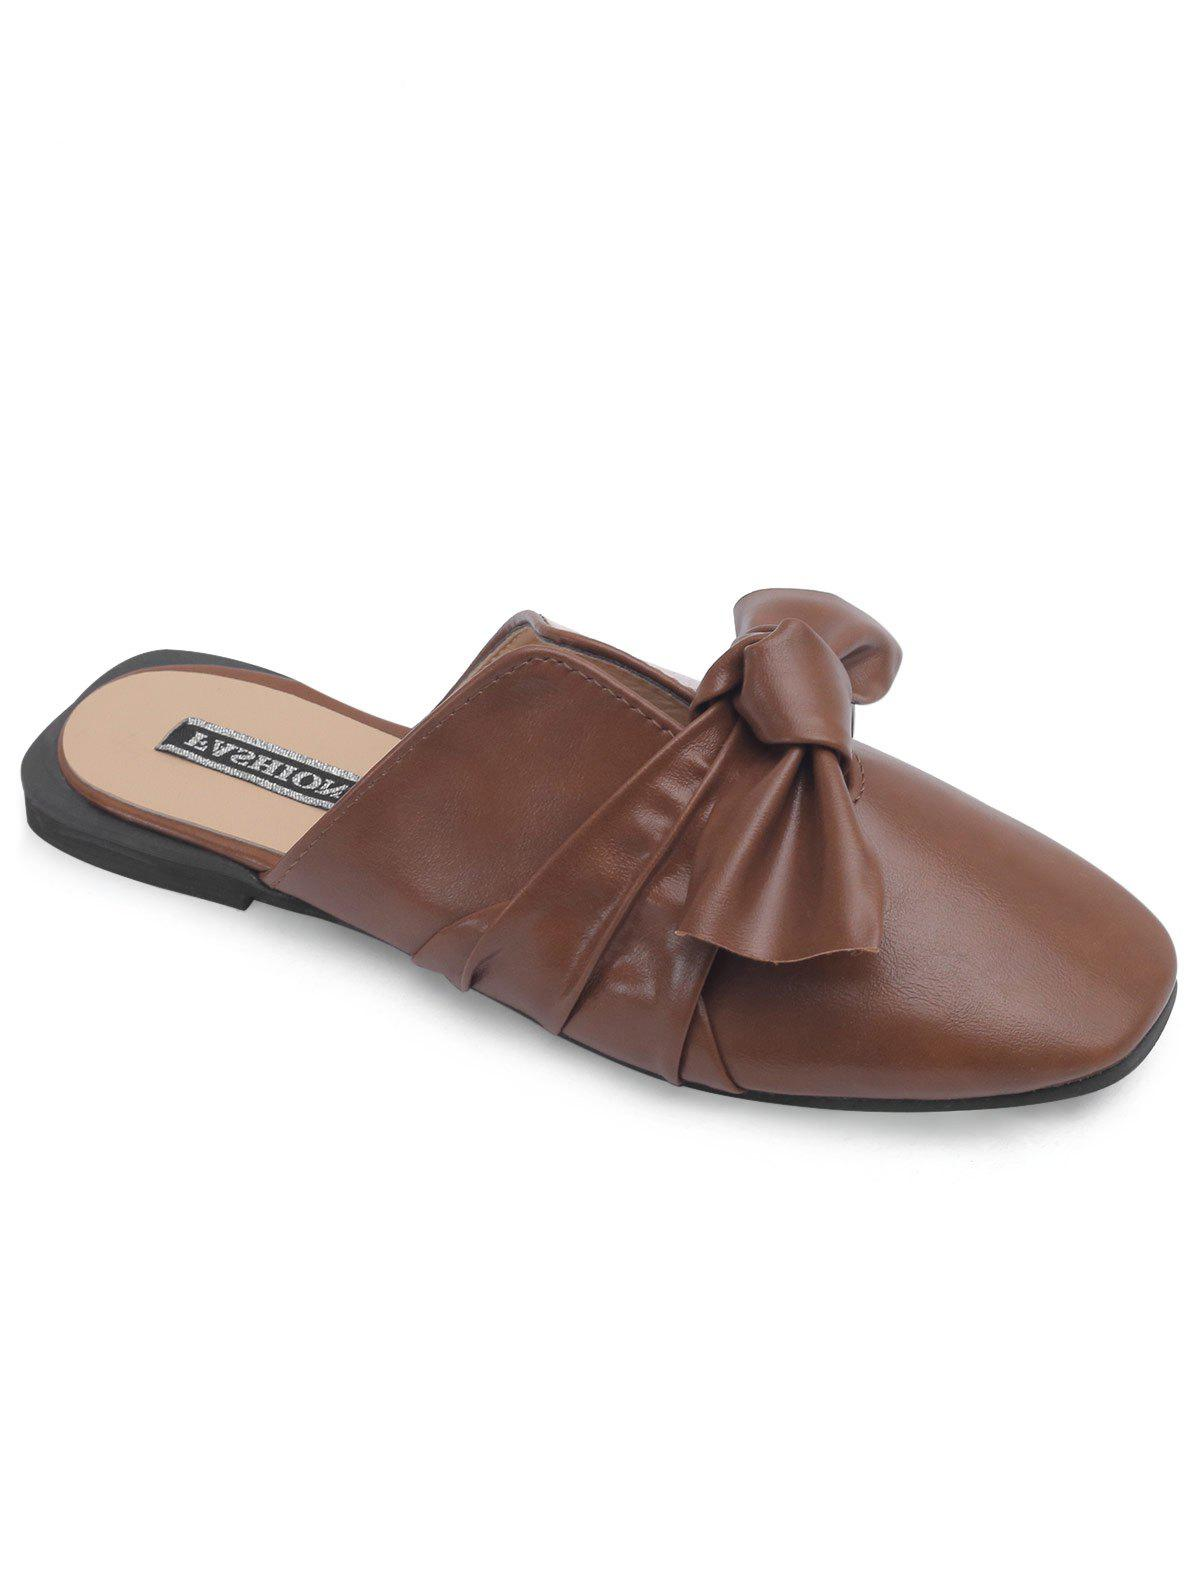 Store Bow Square Toe Flat Heel Mules Shoes